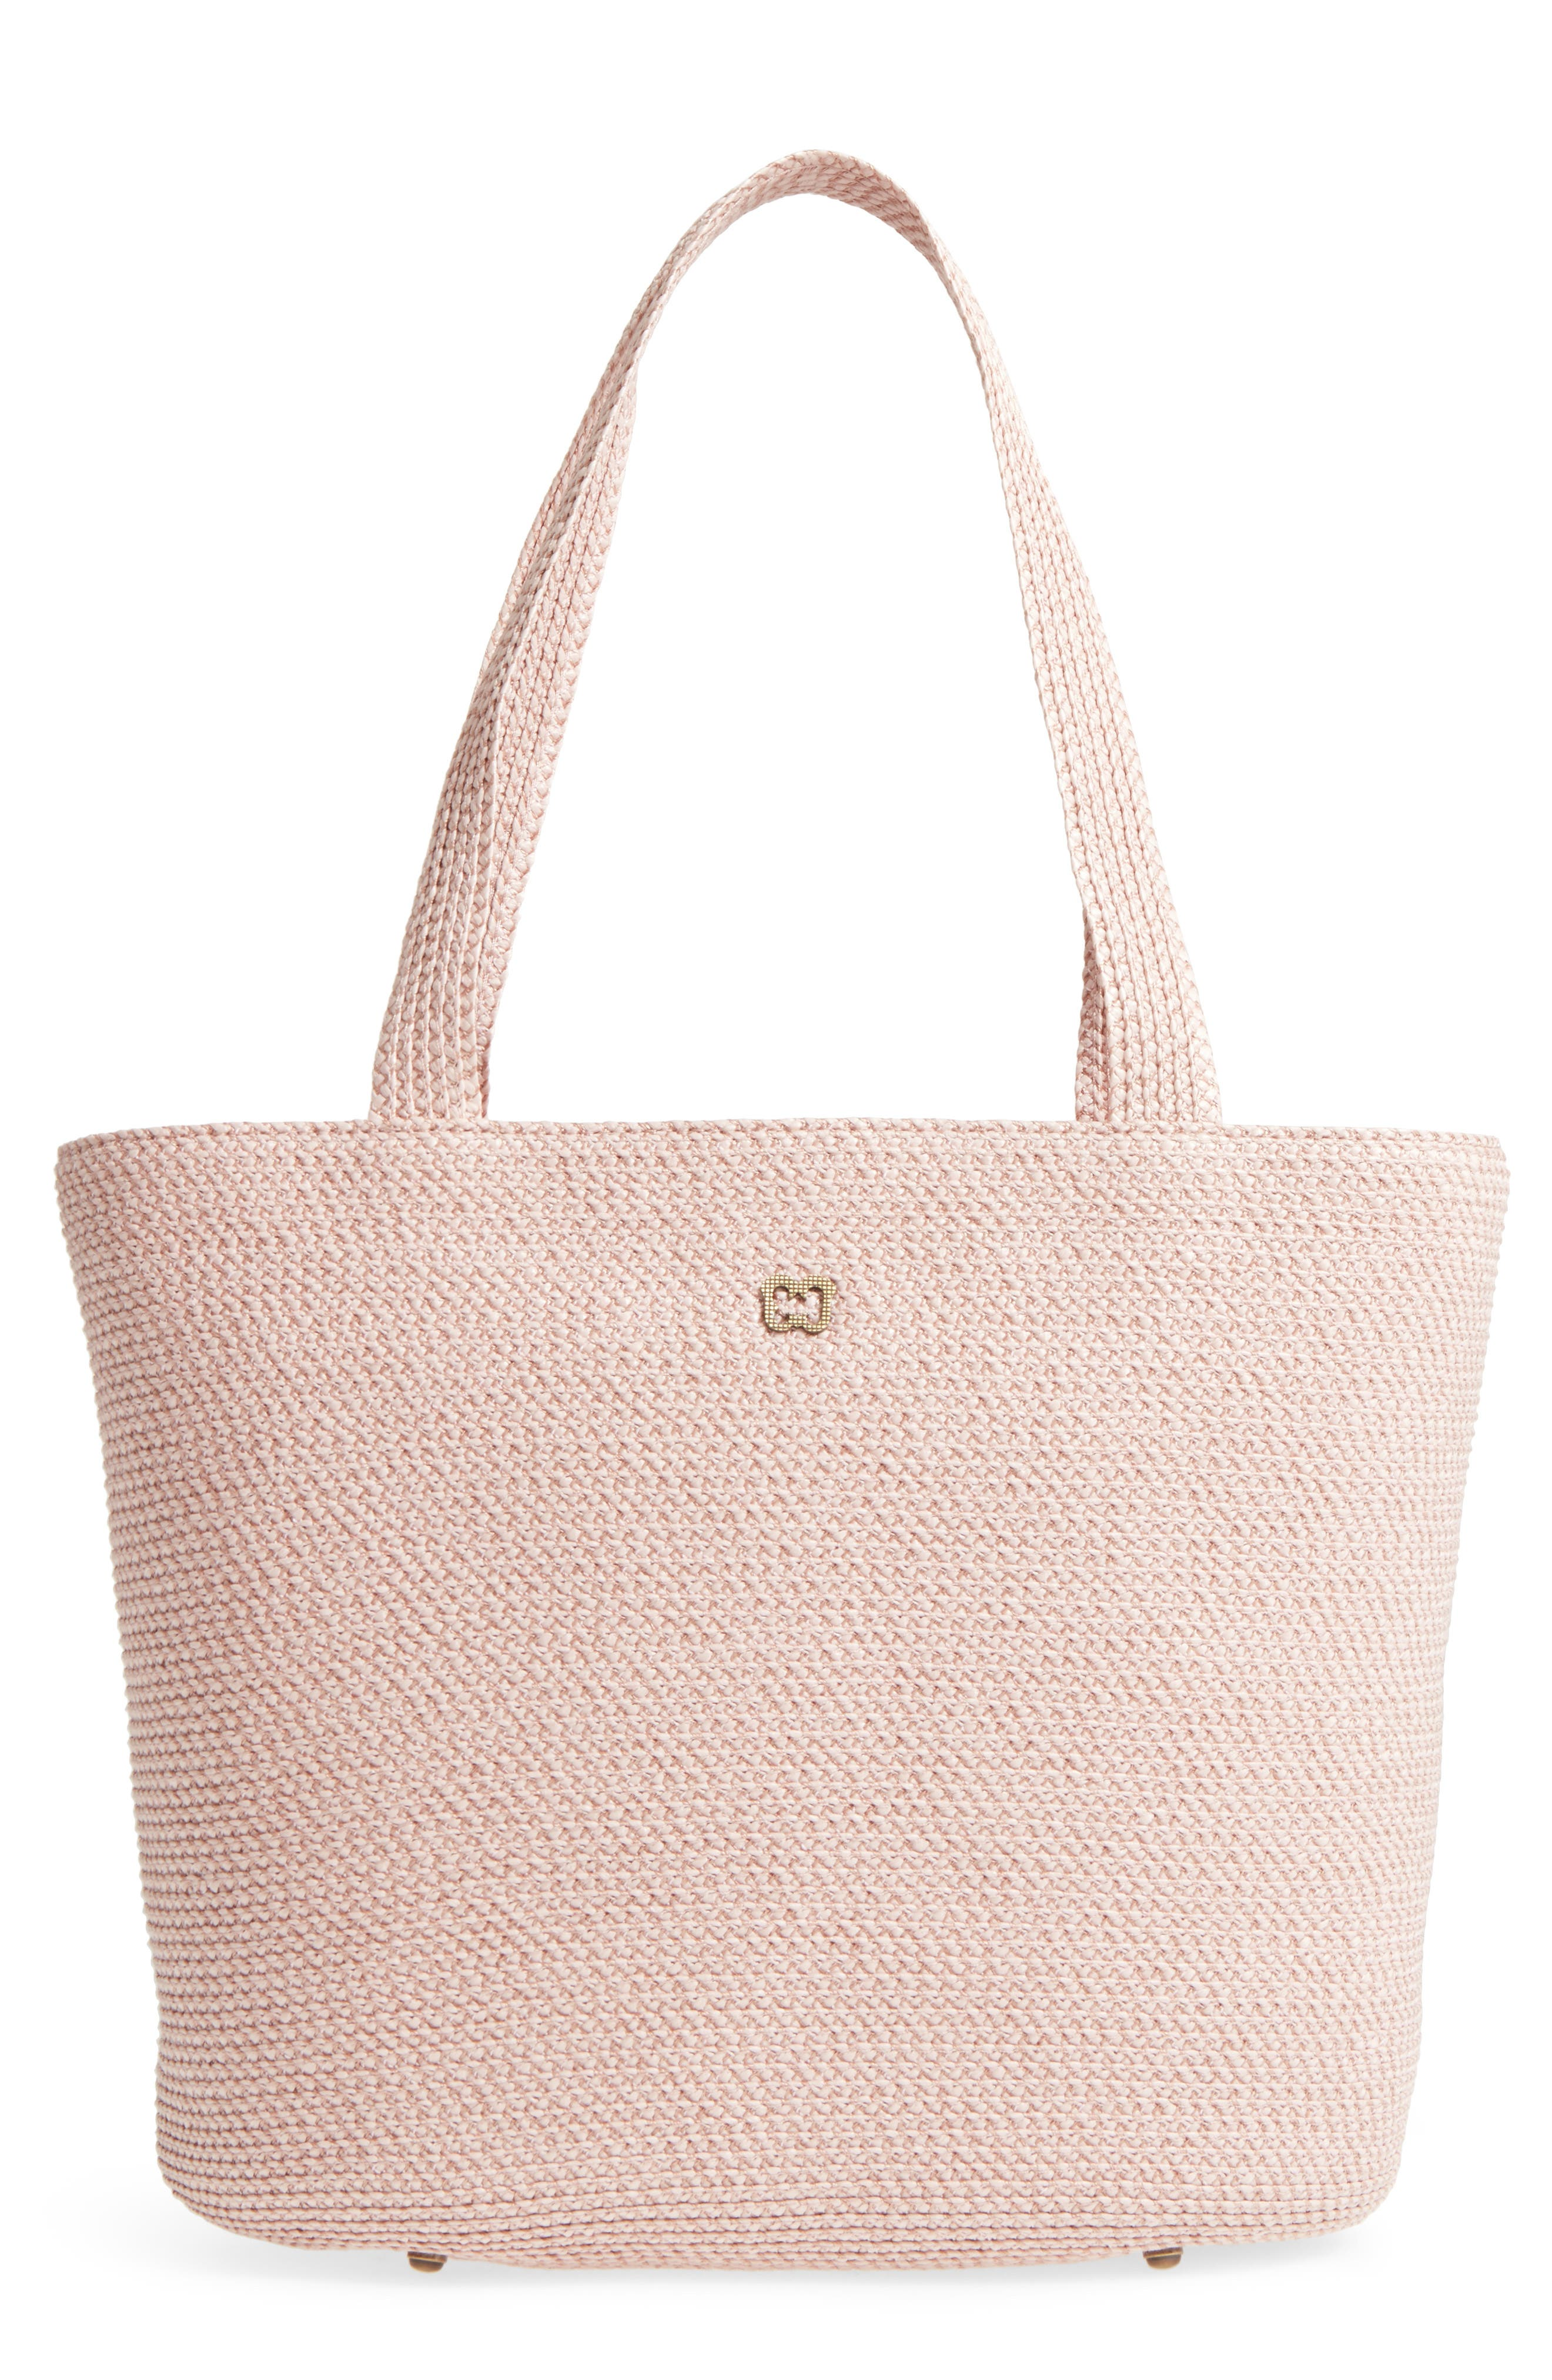 Squishee<sup>®</sup> Tote,                         Main,                         color, Blush